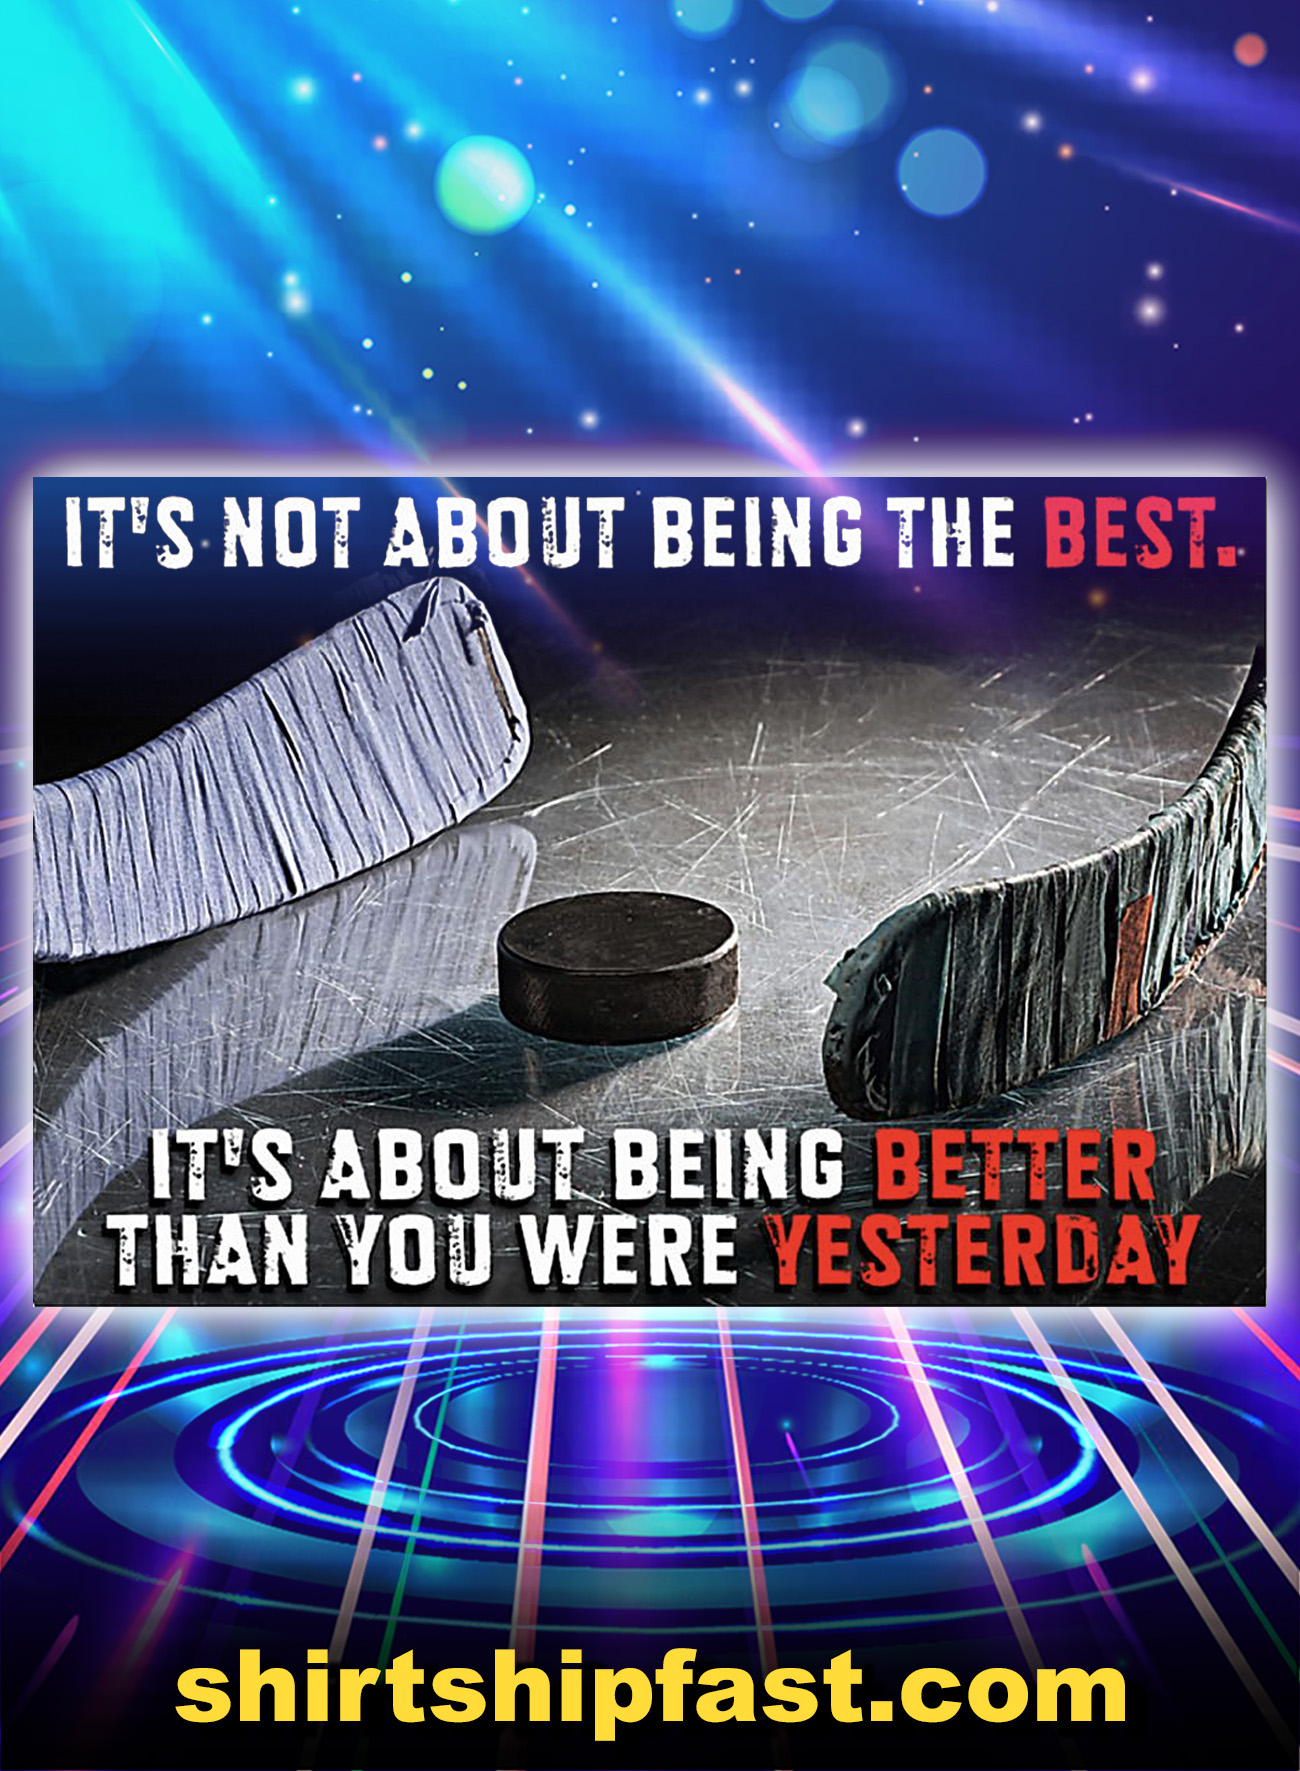 Hockey It's not about being the best poster - A4